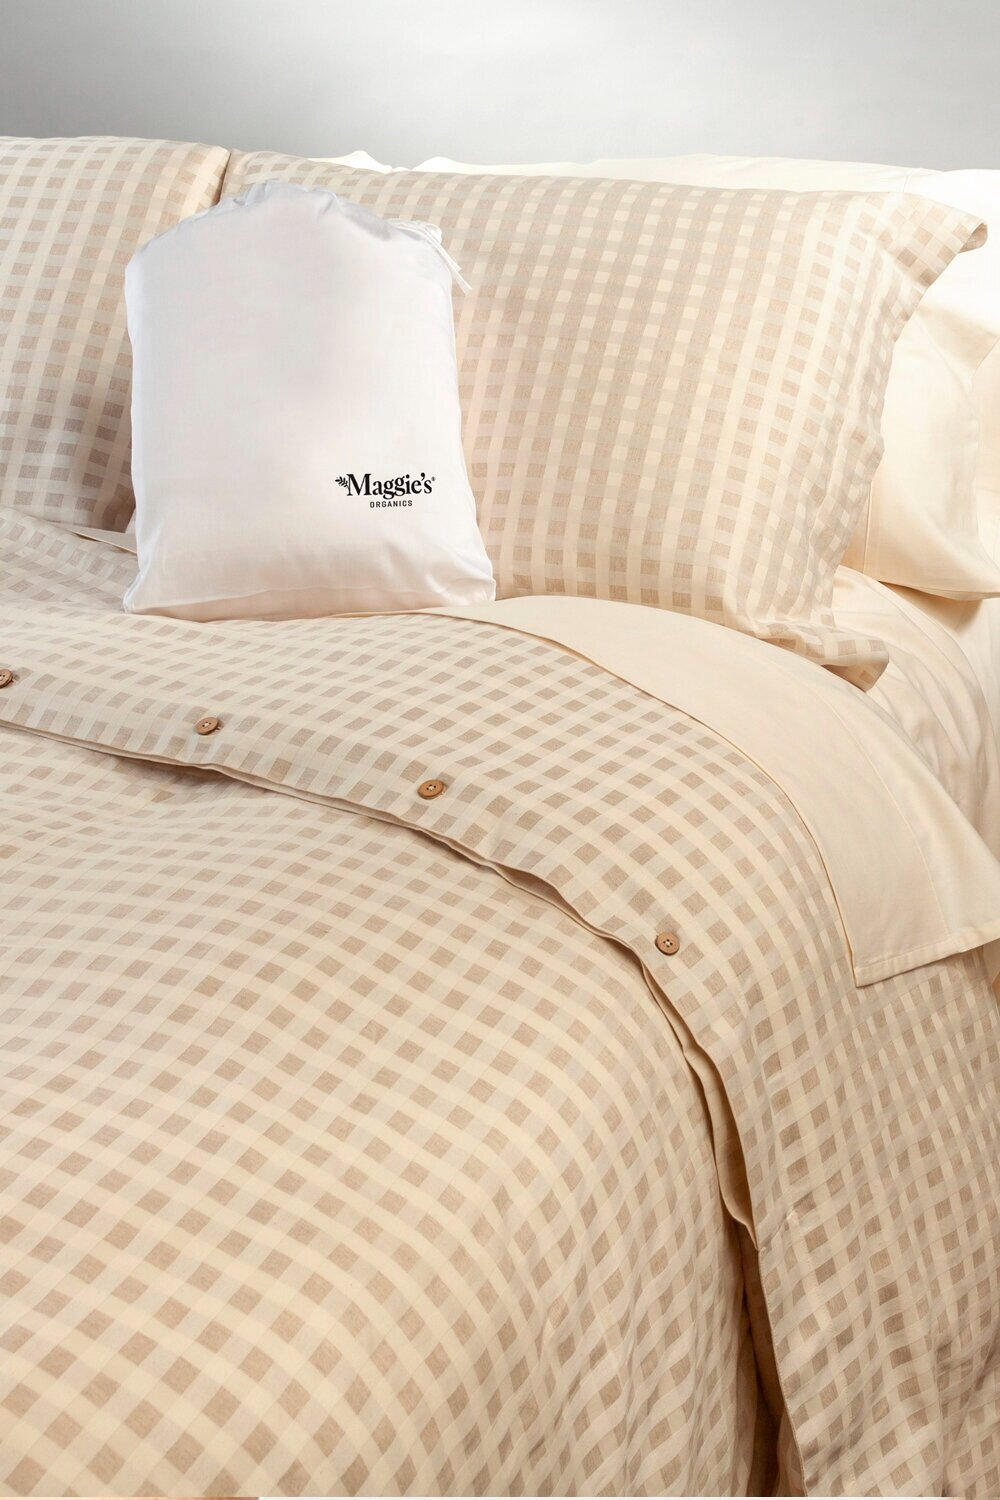 Sustainably Chic | Best Sustainable Lifestyle Blogs | Best Sustainable Bedding Brands | Maggie's Organics.jpg